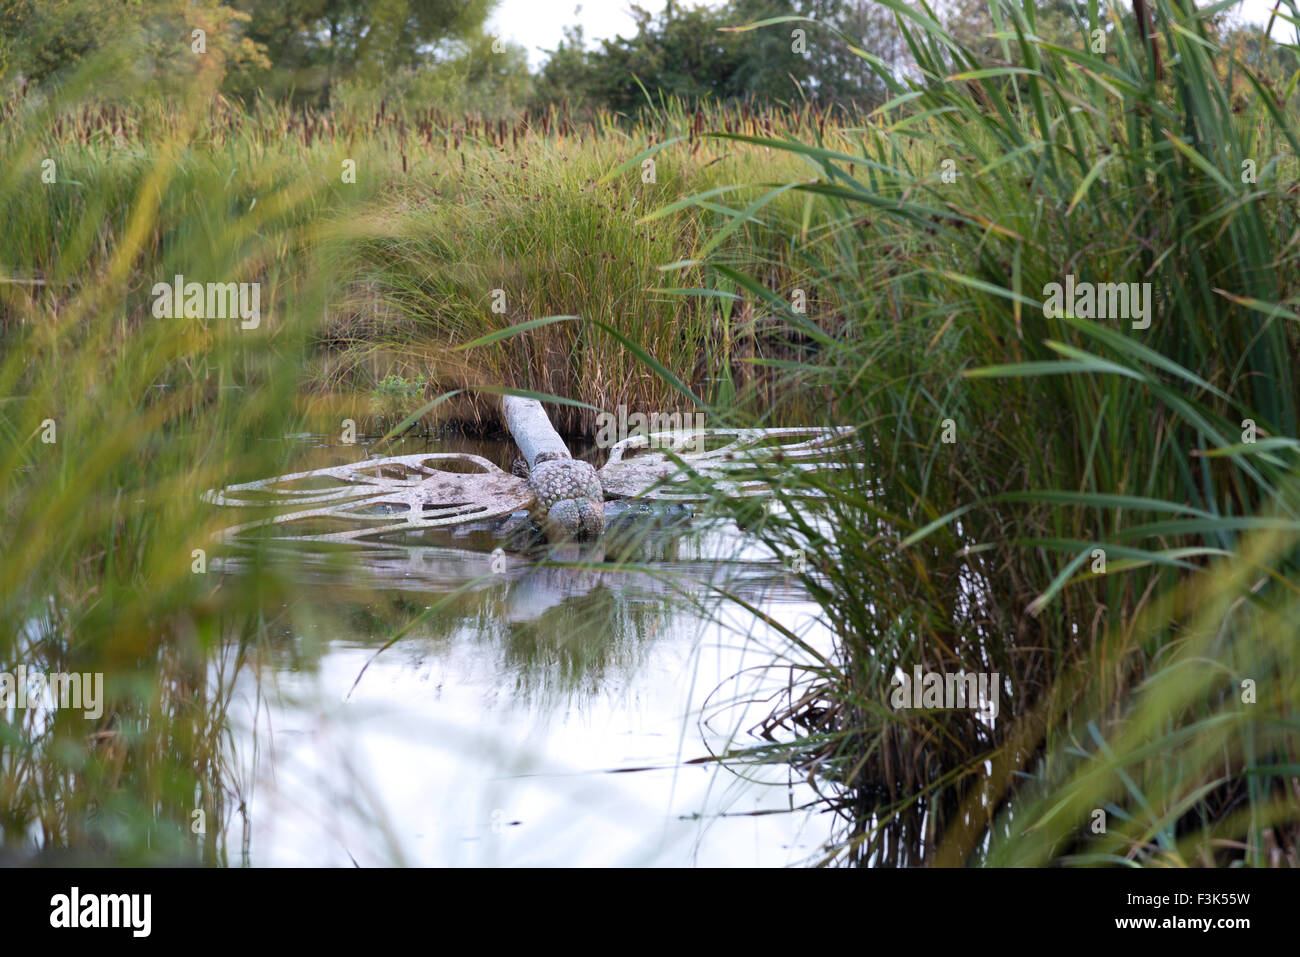 A giant grey gray concrete and metal dragonfly sculpture in the water at a nature reserve pond with reed mace and Stock Photo